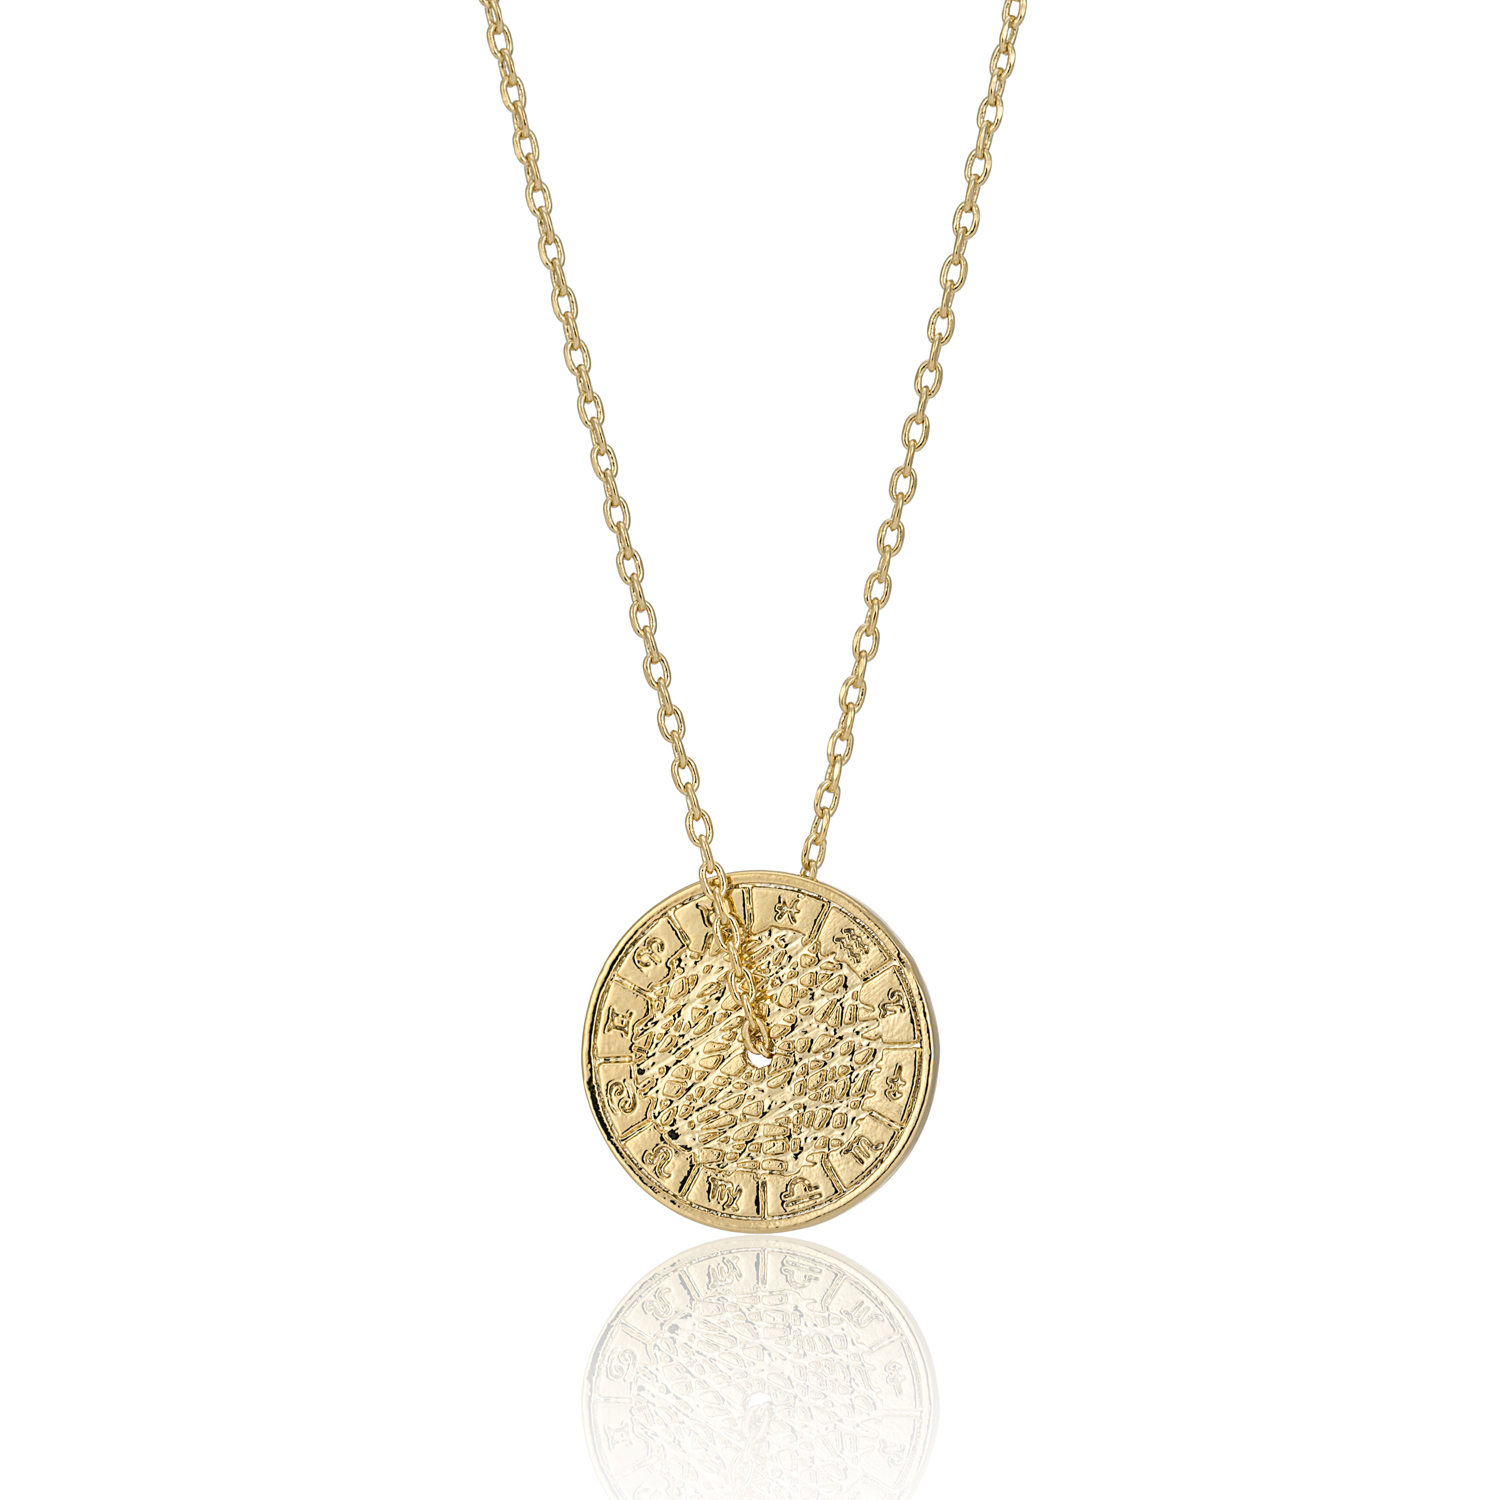 GOLD Enchanted Treasure Coin Necklace